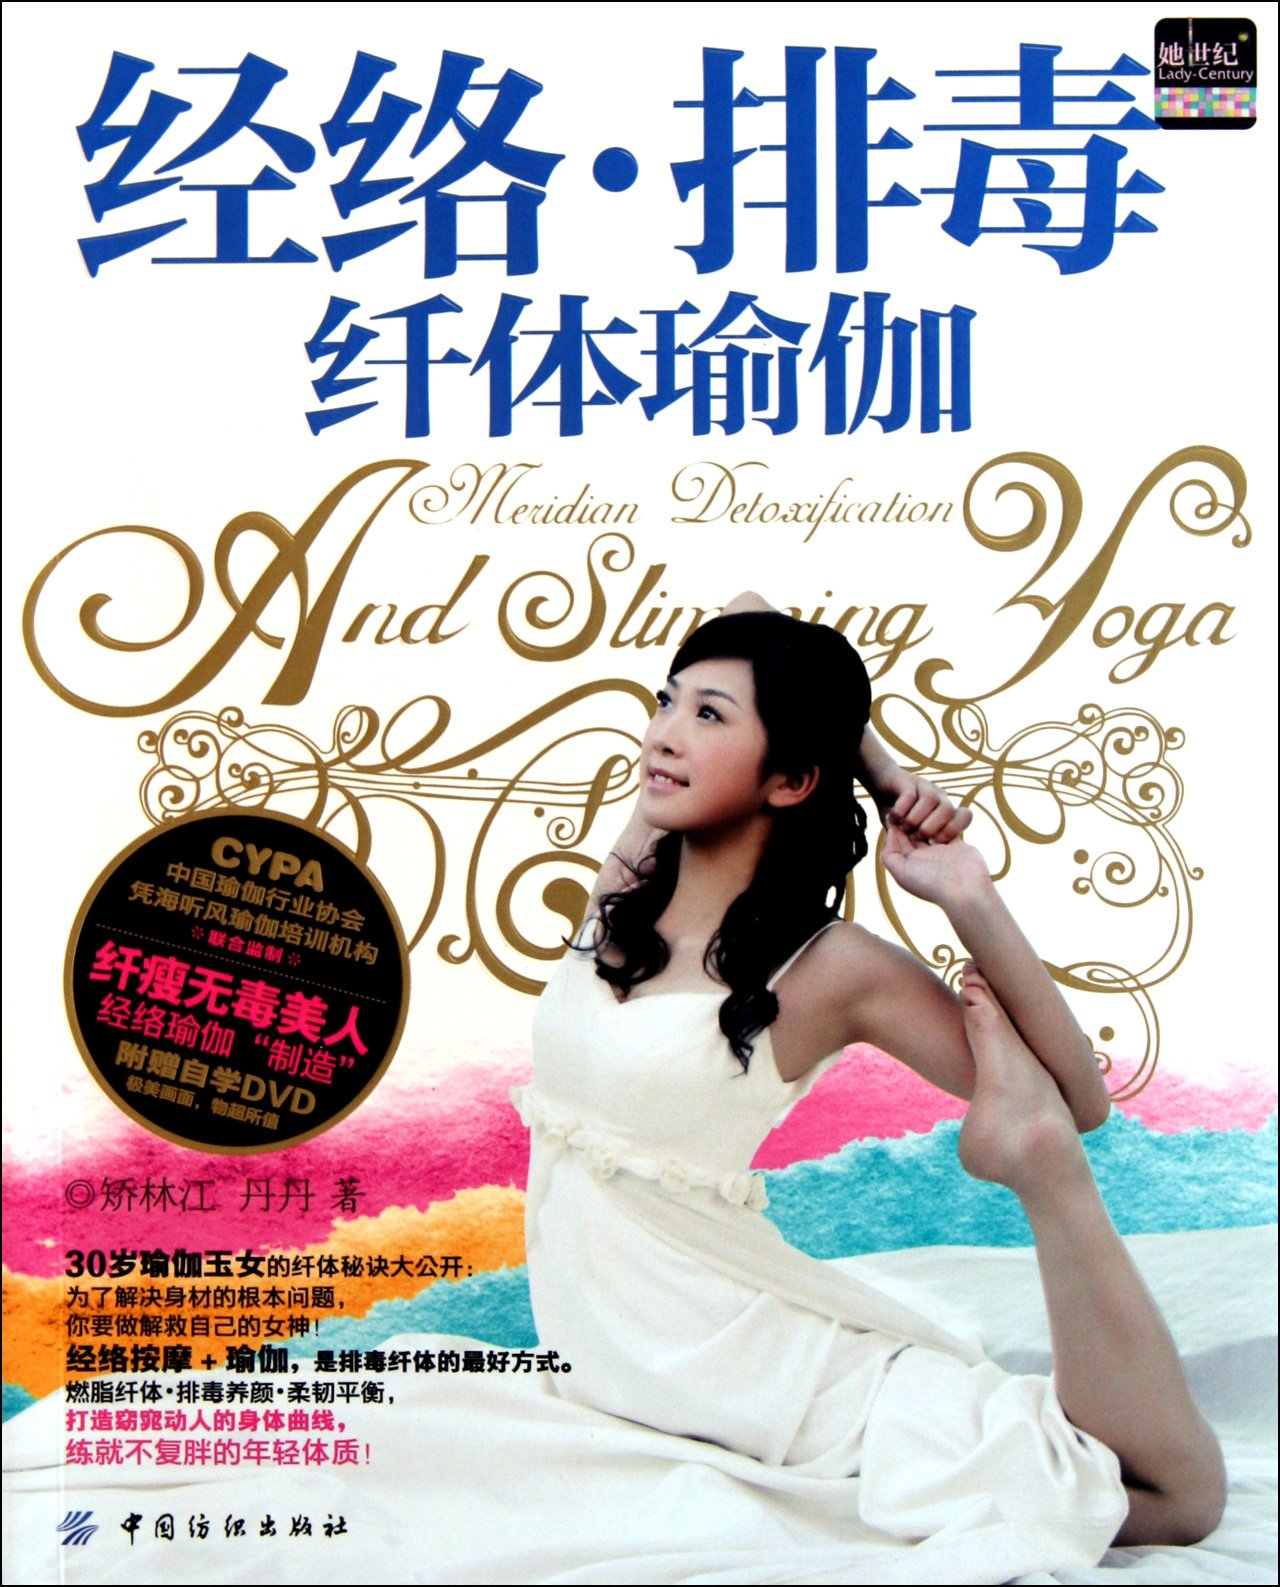 Meridian-Detoxification Yoga Slimming-DVD Attached (Chinese Edition) PDF